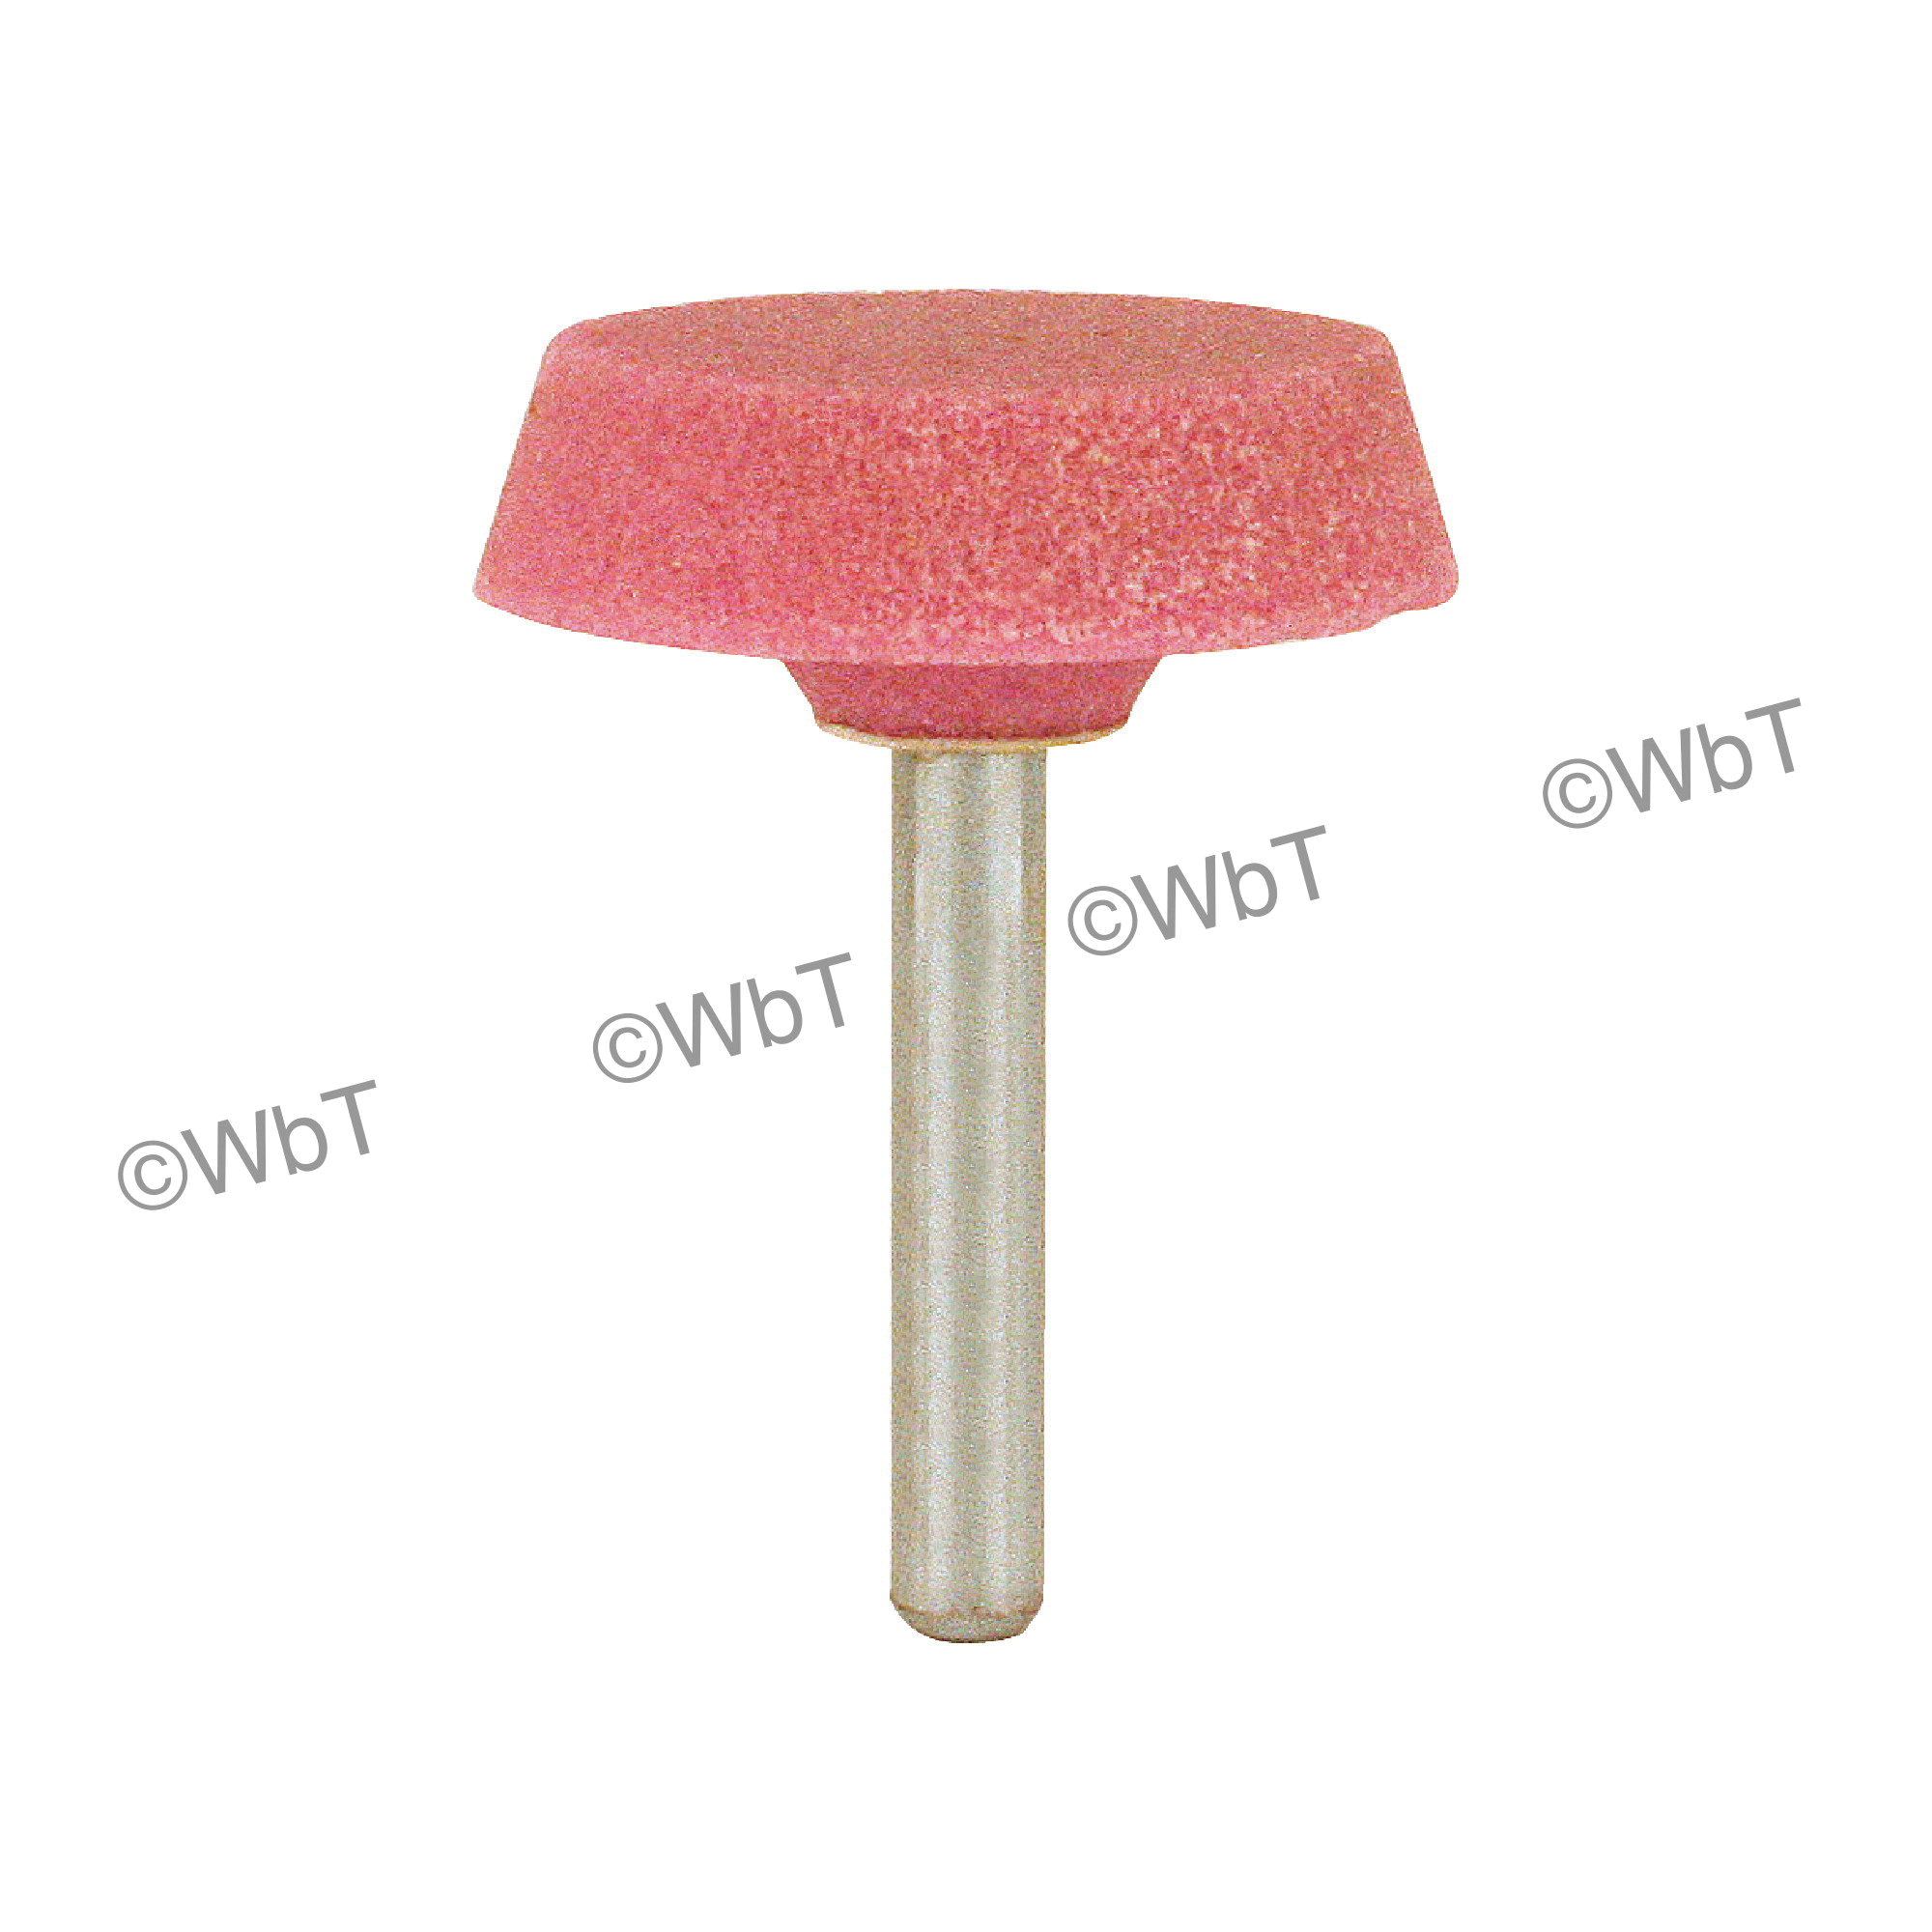 TTC 53-500-031 Group A Mounted Stone, A31, 1 in Dia x 1-3/8 in L Head, 1/4 in Dia Shank